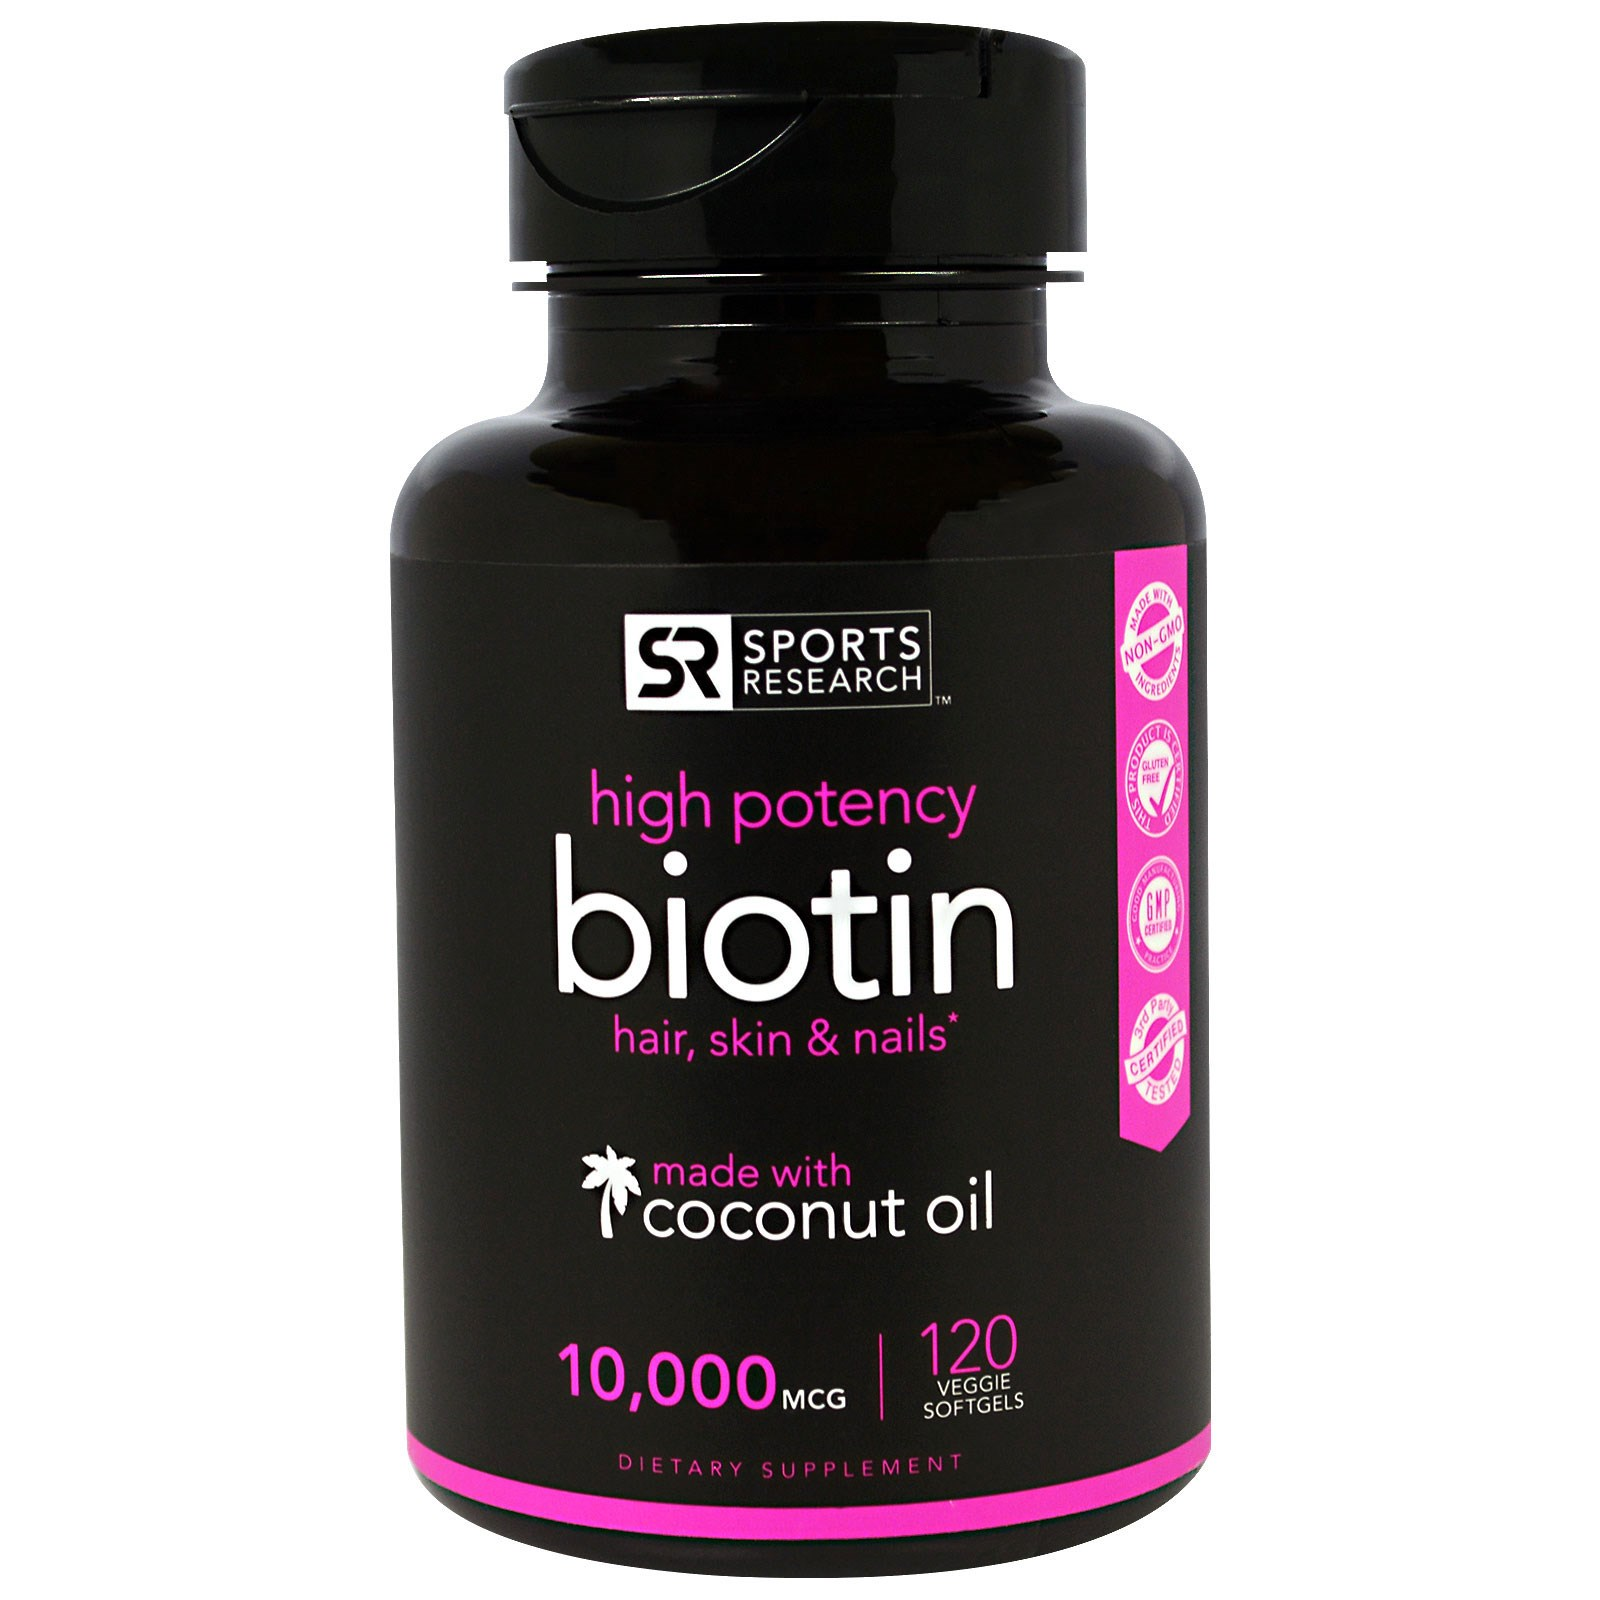 Sports Research, Biotin 10,000mcg in Organic Coconut Oil- 120 Veggie Softgels